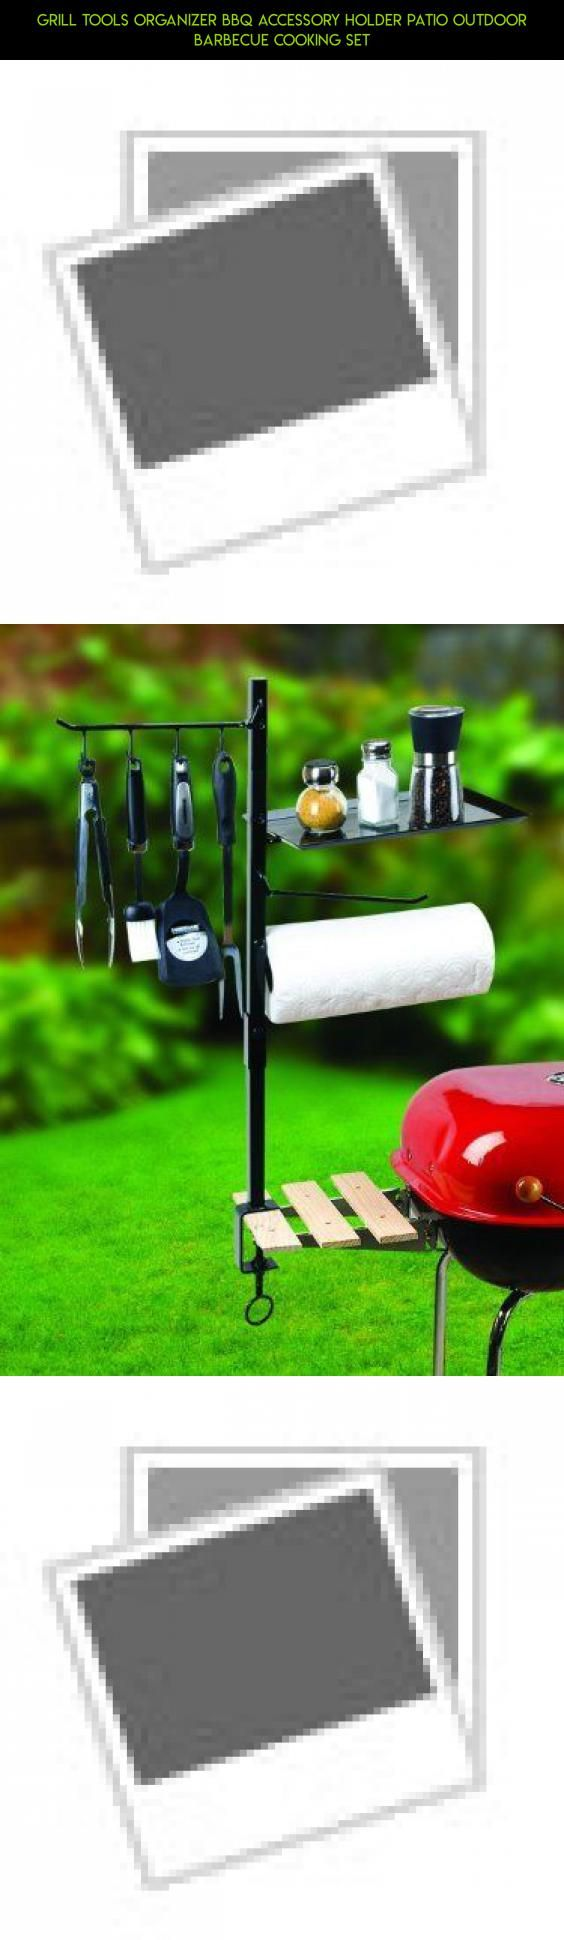 Grill Tools Organizer BBQ Accessory Holder Patio Outdoor Barbecue Cooking Set #racing #fpv #outdoor #organizer #kit #camera #parts #technology #plans #products #gadgets #cooking #tech #shopping #drone